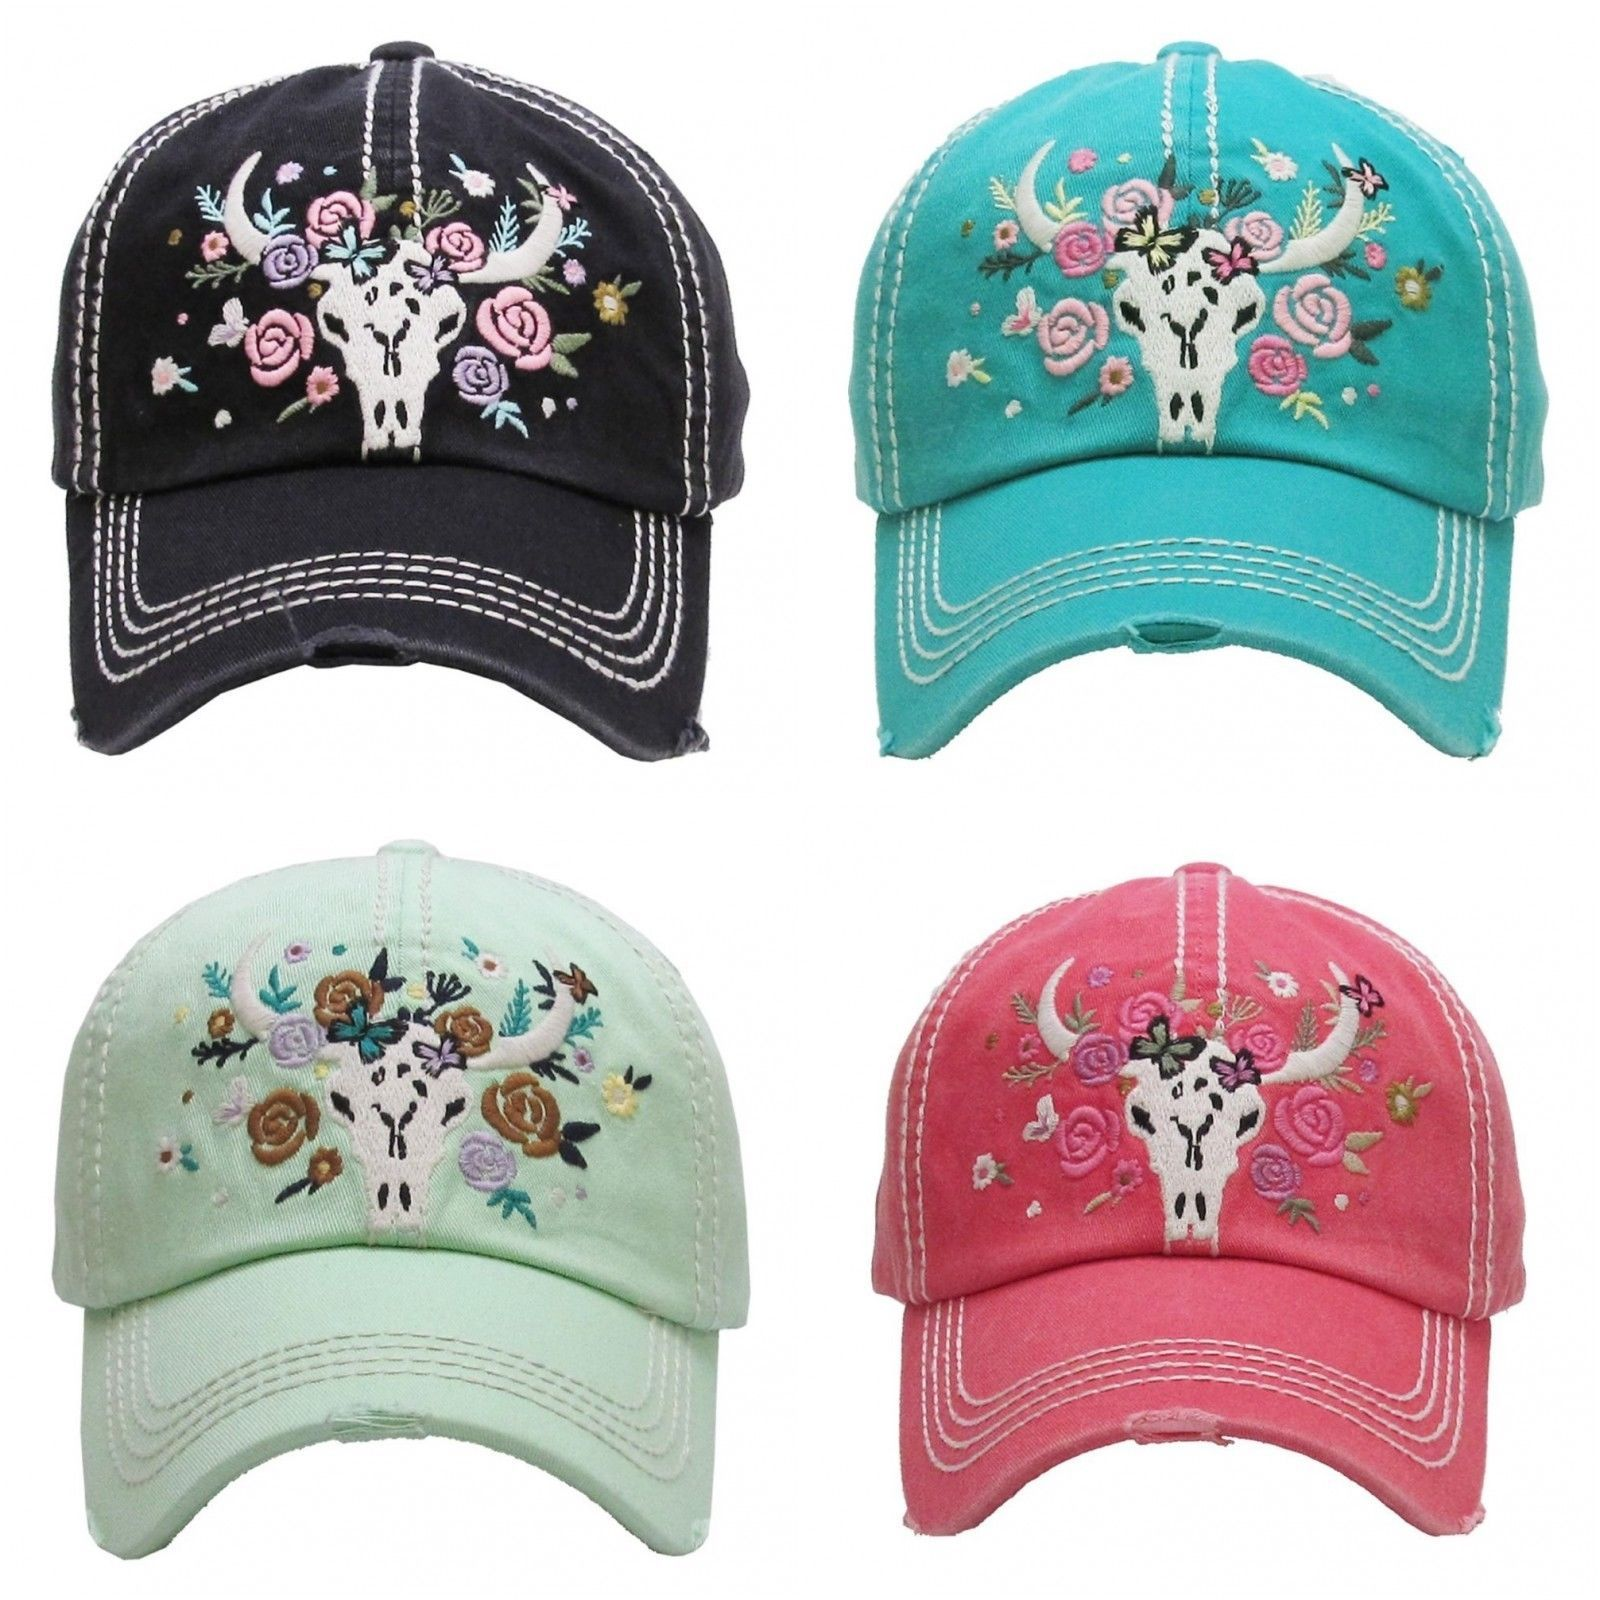 Primary image for FLORAL STEER SKULL Embroidered, Vintage Style Ball Cap